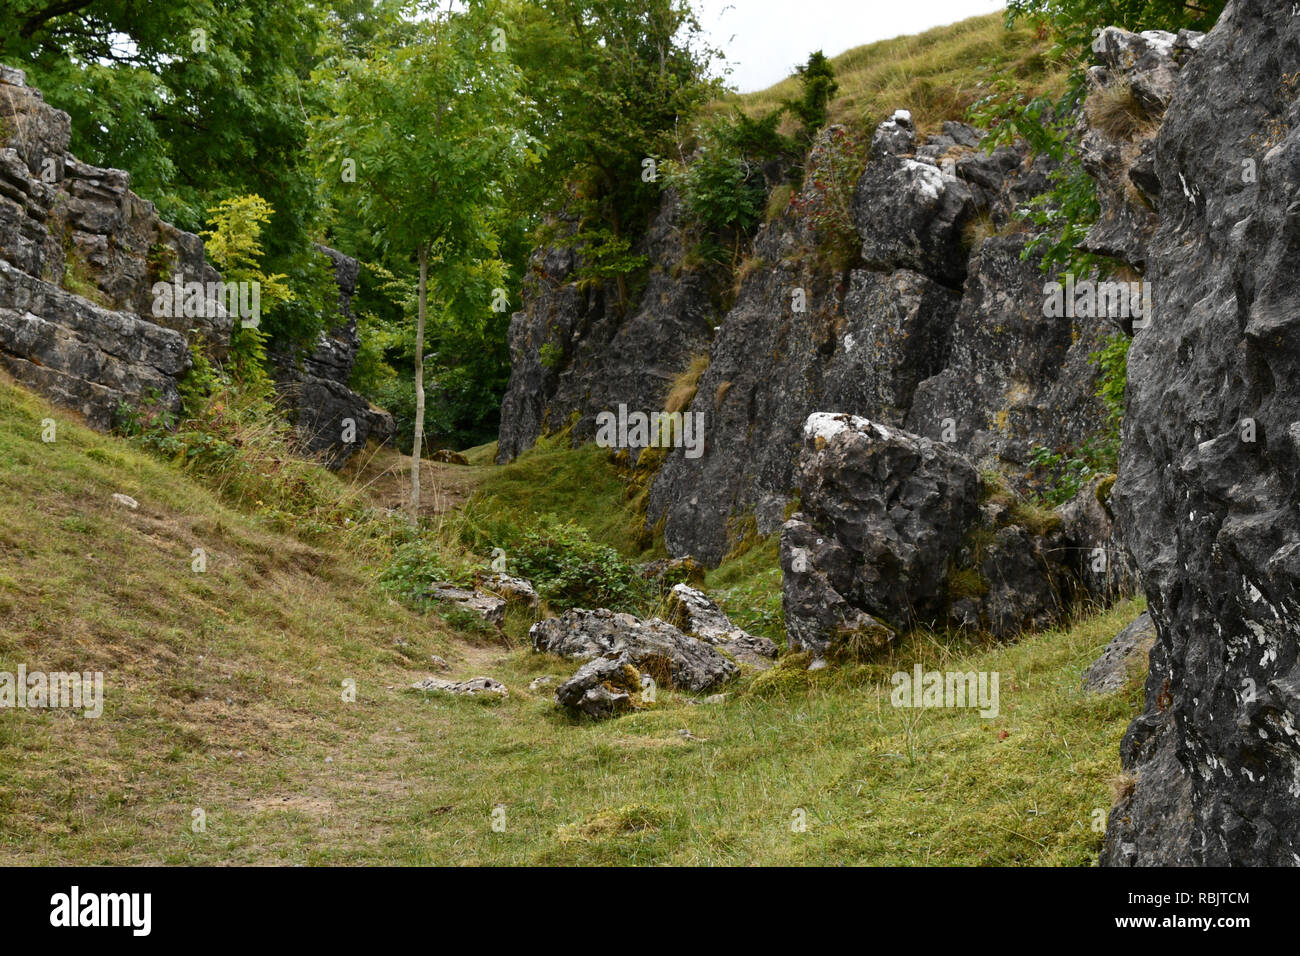 Ubley Warren on the Mendip hills in Somerset, shown here are worked out mineral veins or 'rakes.These are among the uneven mine workings - Stock Image